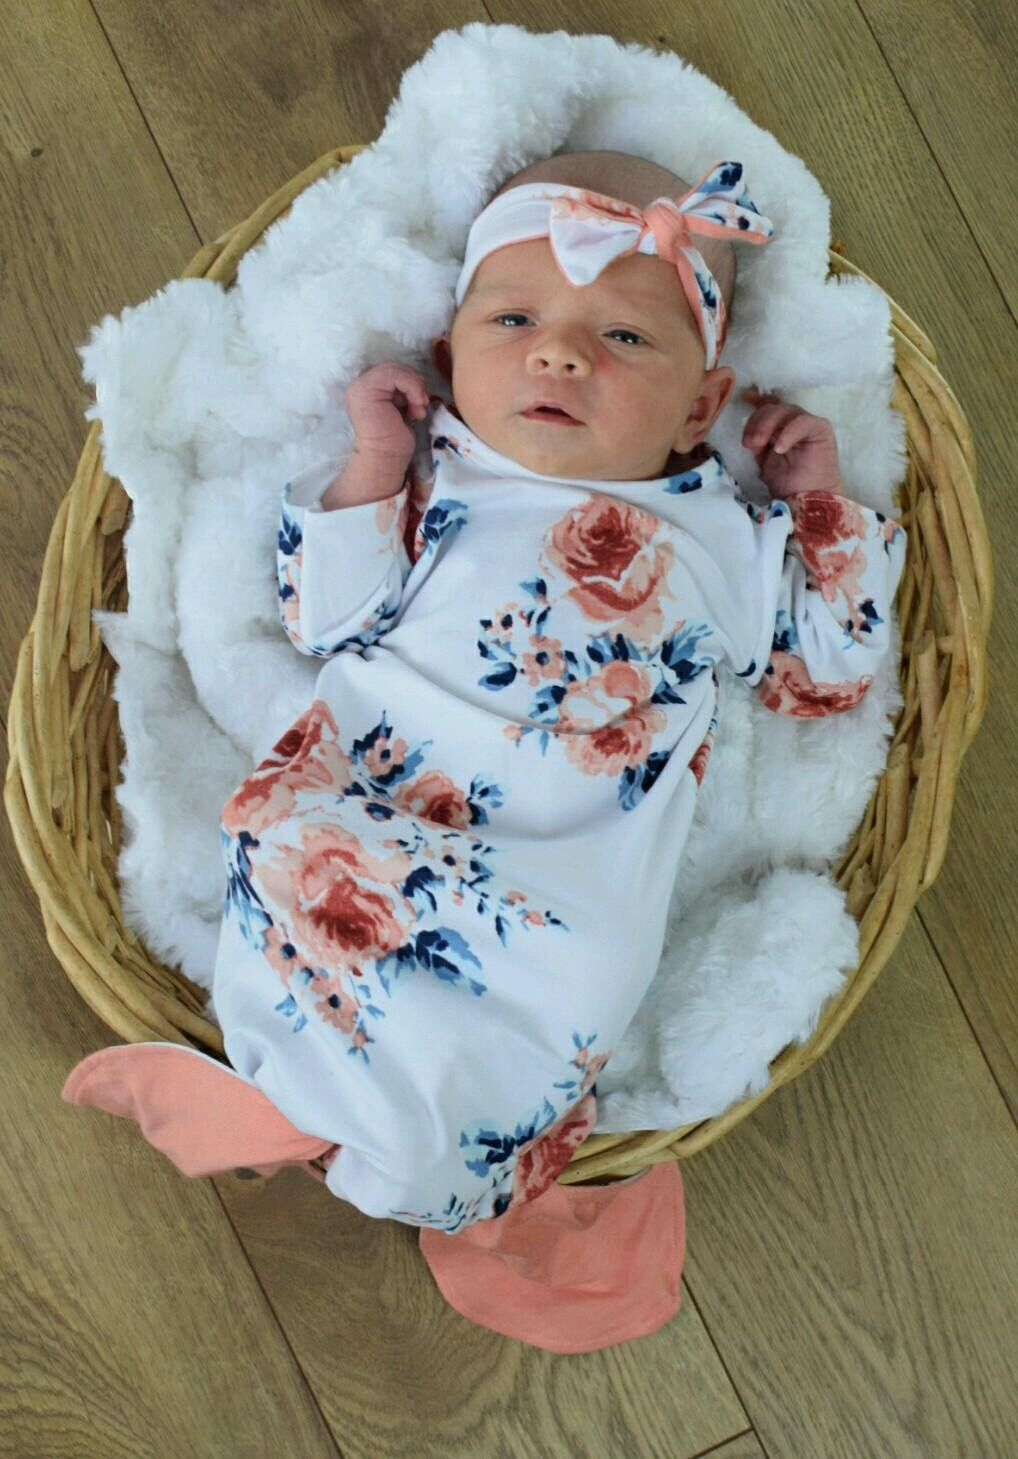 Pin by Chelsea Taylor on JPT | Pinterest | Layette, Peach and Mermaid